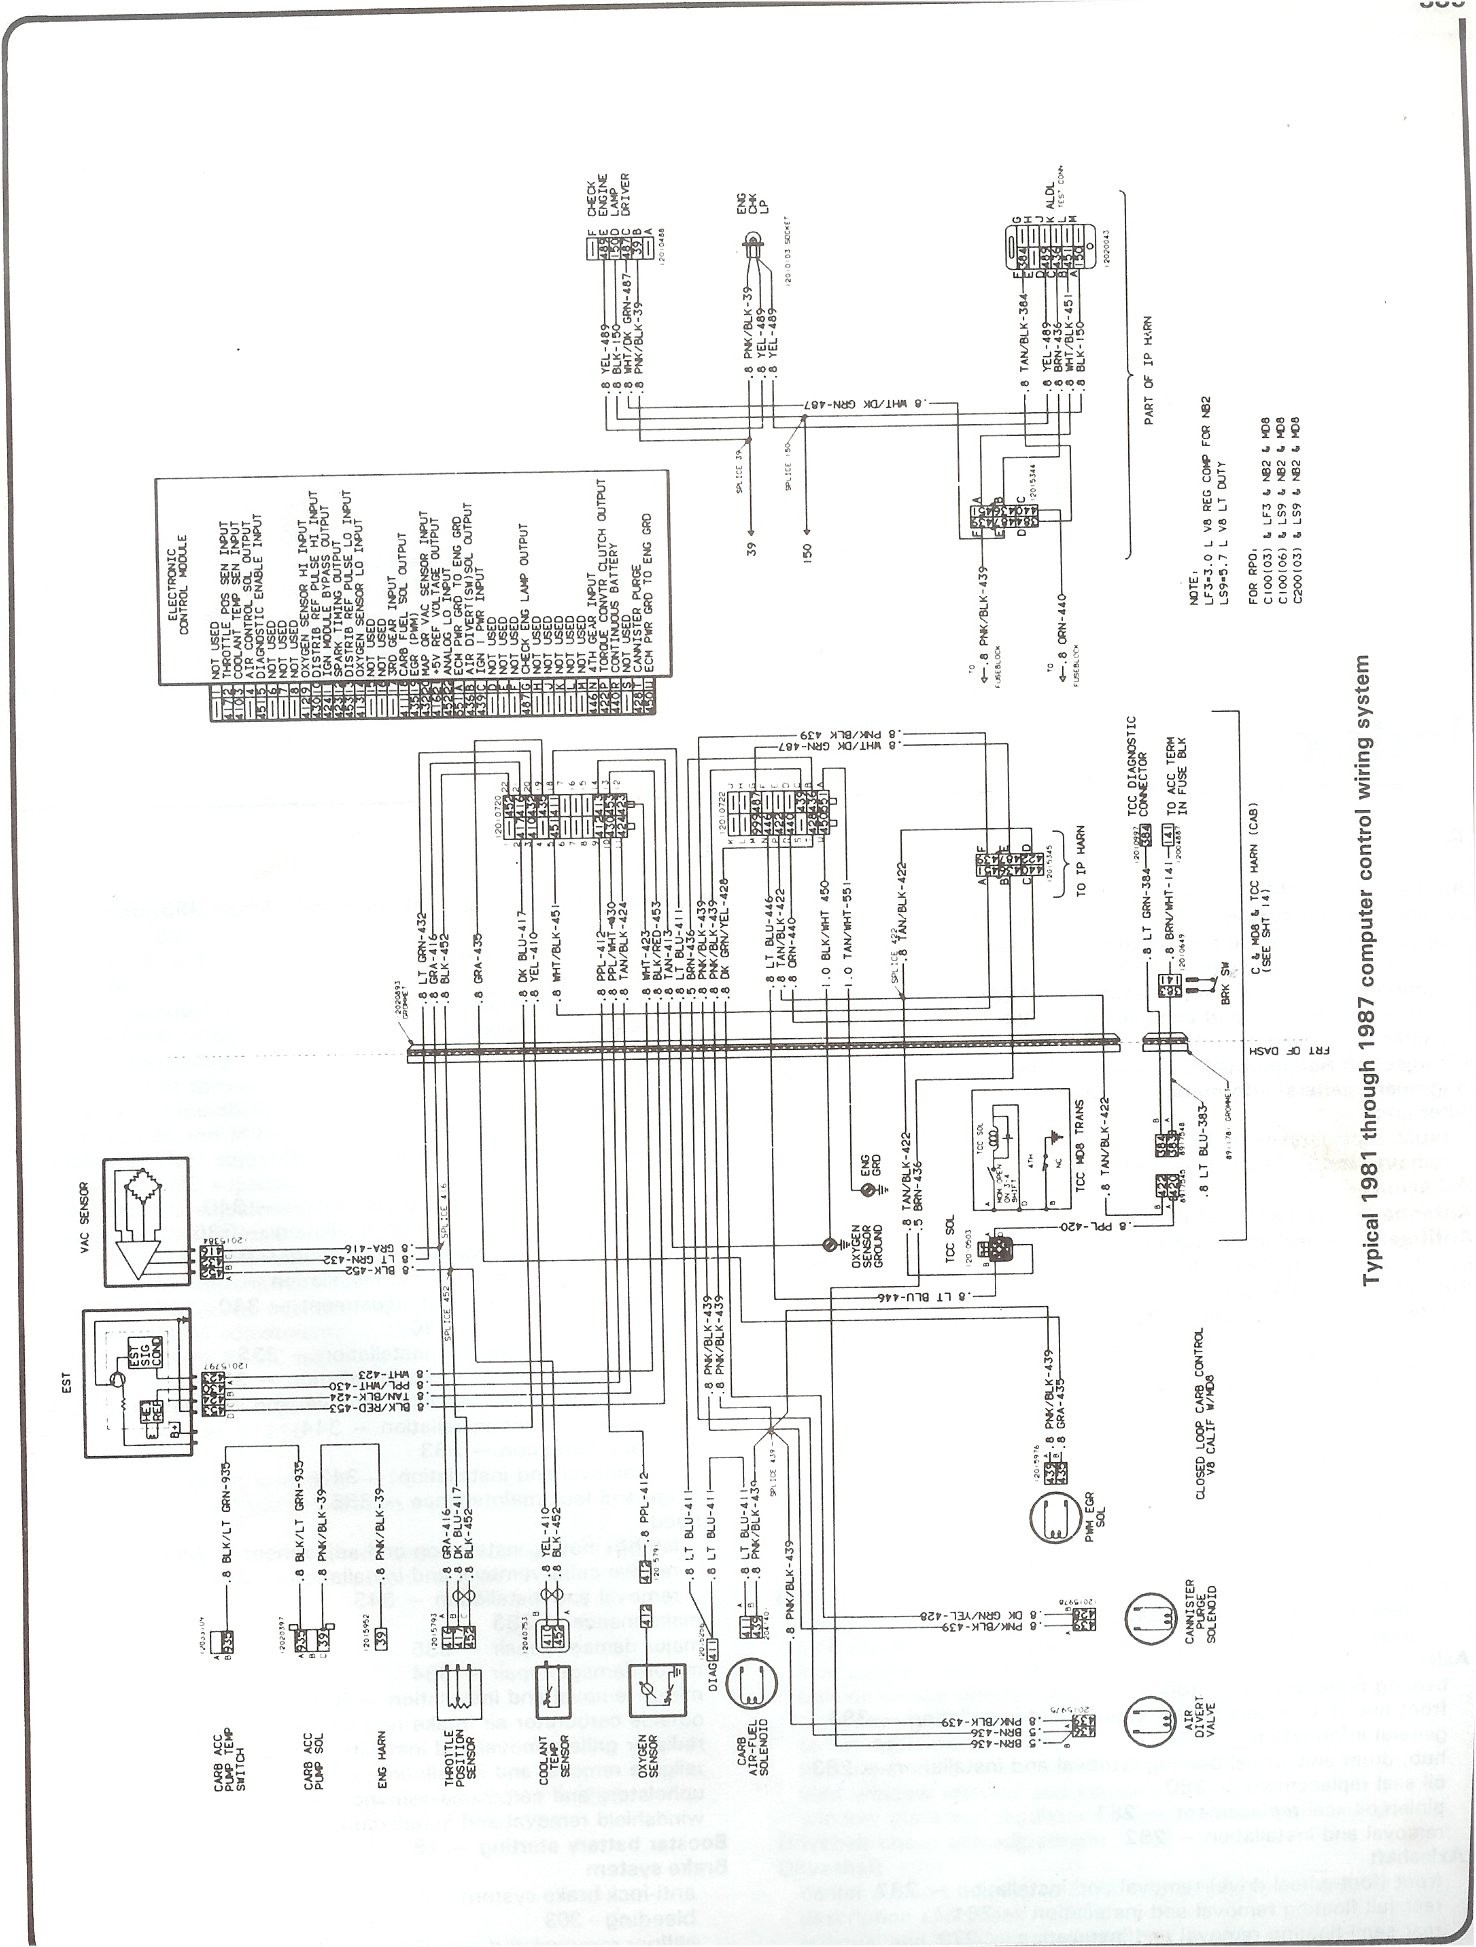 hight resolution of 1986 chevy silverado fuse box diagram wiring diagram centre87 chevy fuse diagram wiring diagrams konsult87 chevy